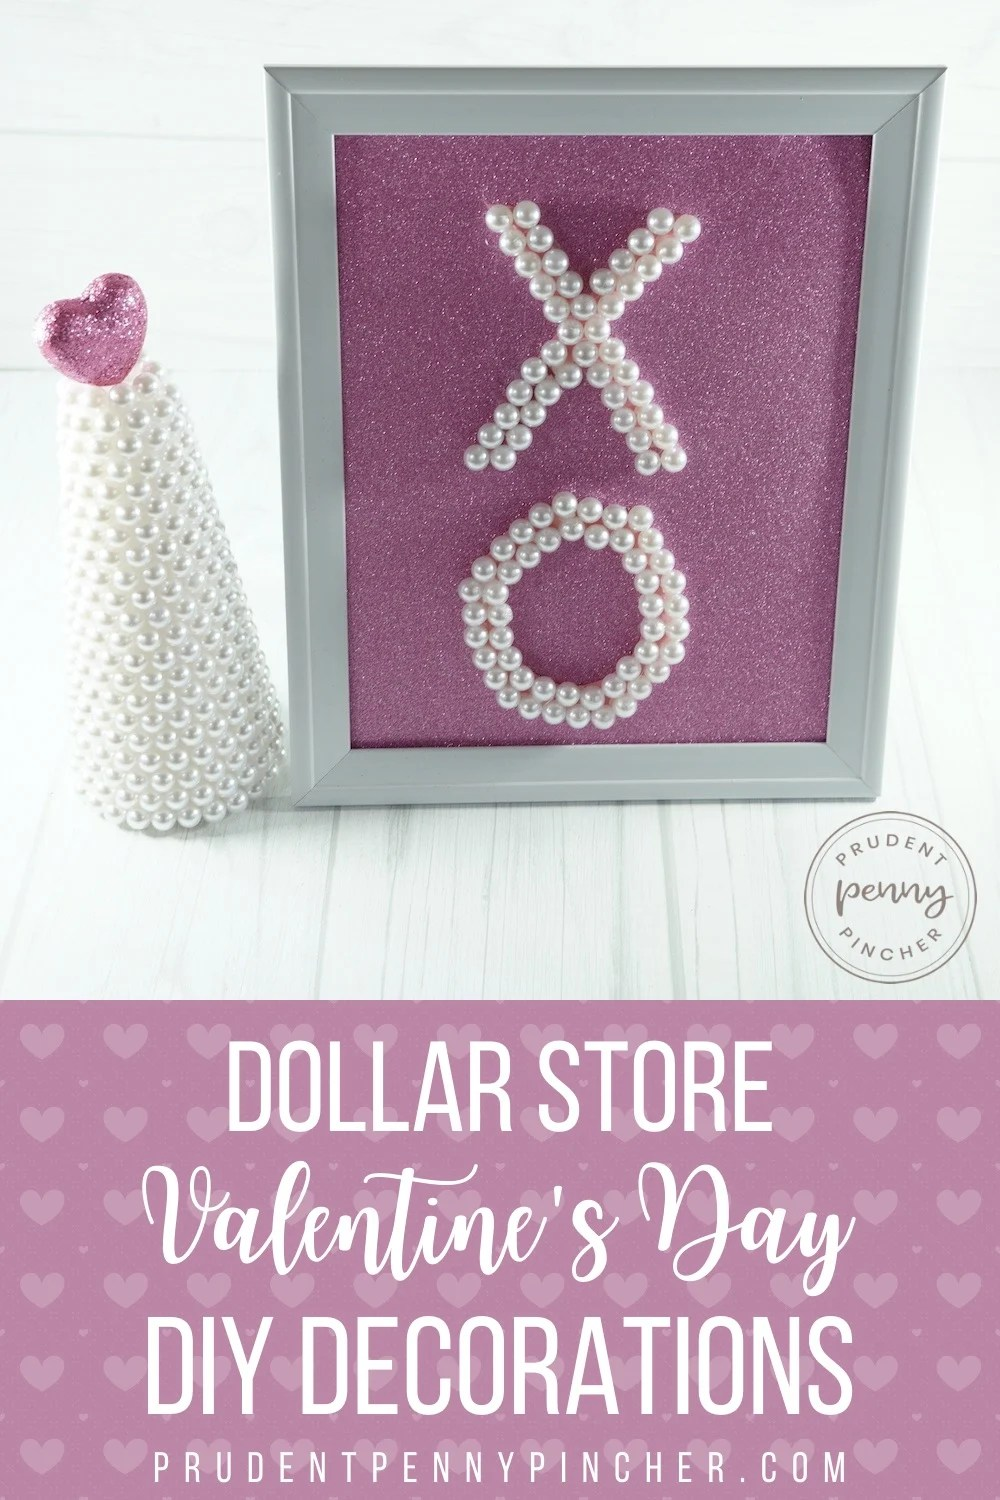 Dollar Store DIY Valentine's Day Decor